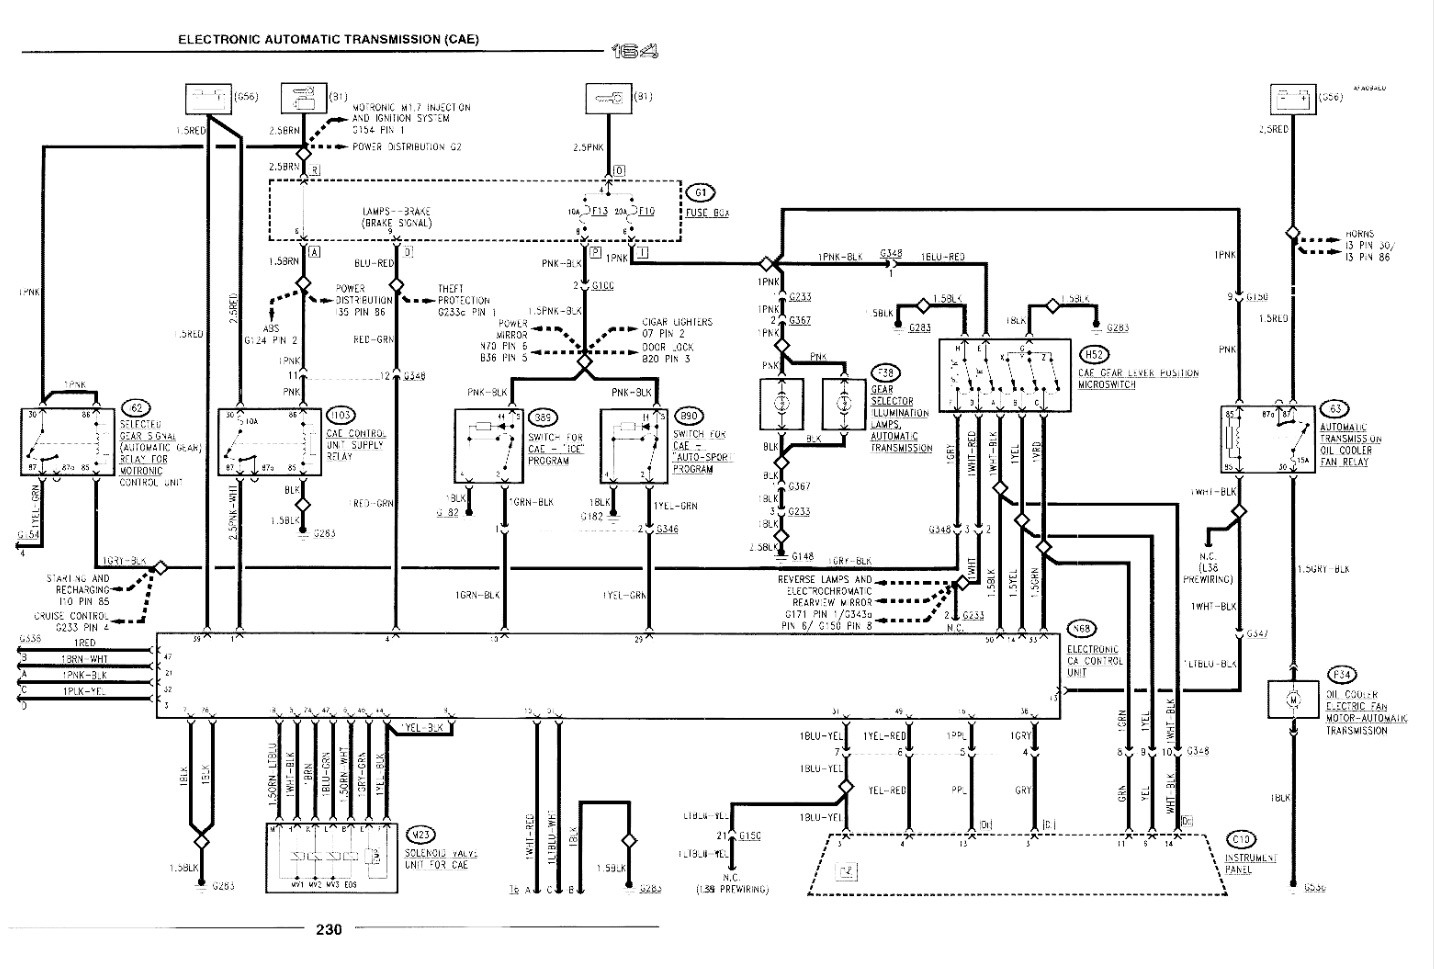 alfa romeo wiring diagram 1997 ez go txt fiat lancia tester its use for diagnosing faults zf